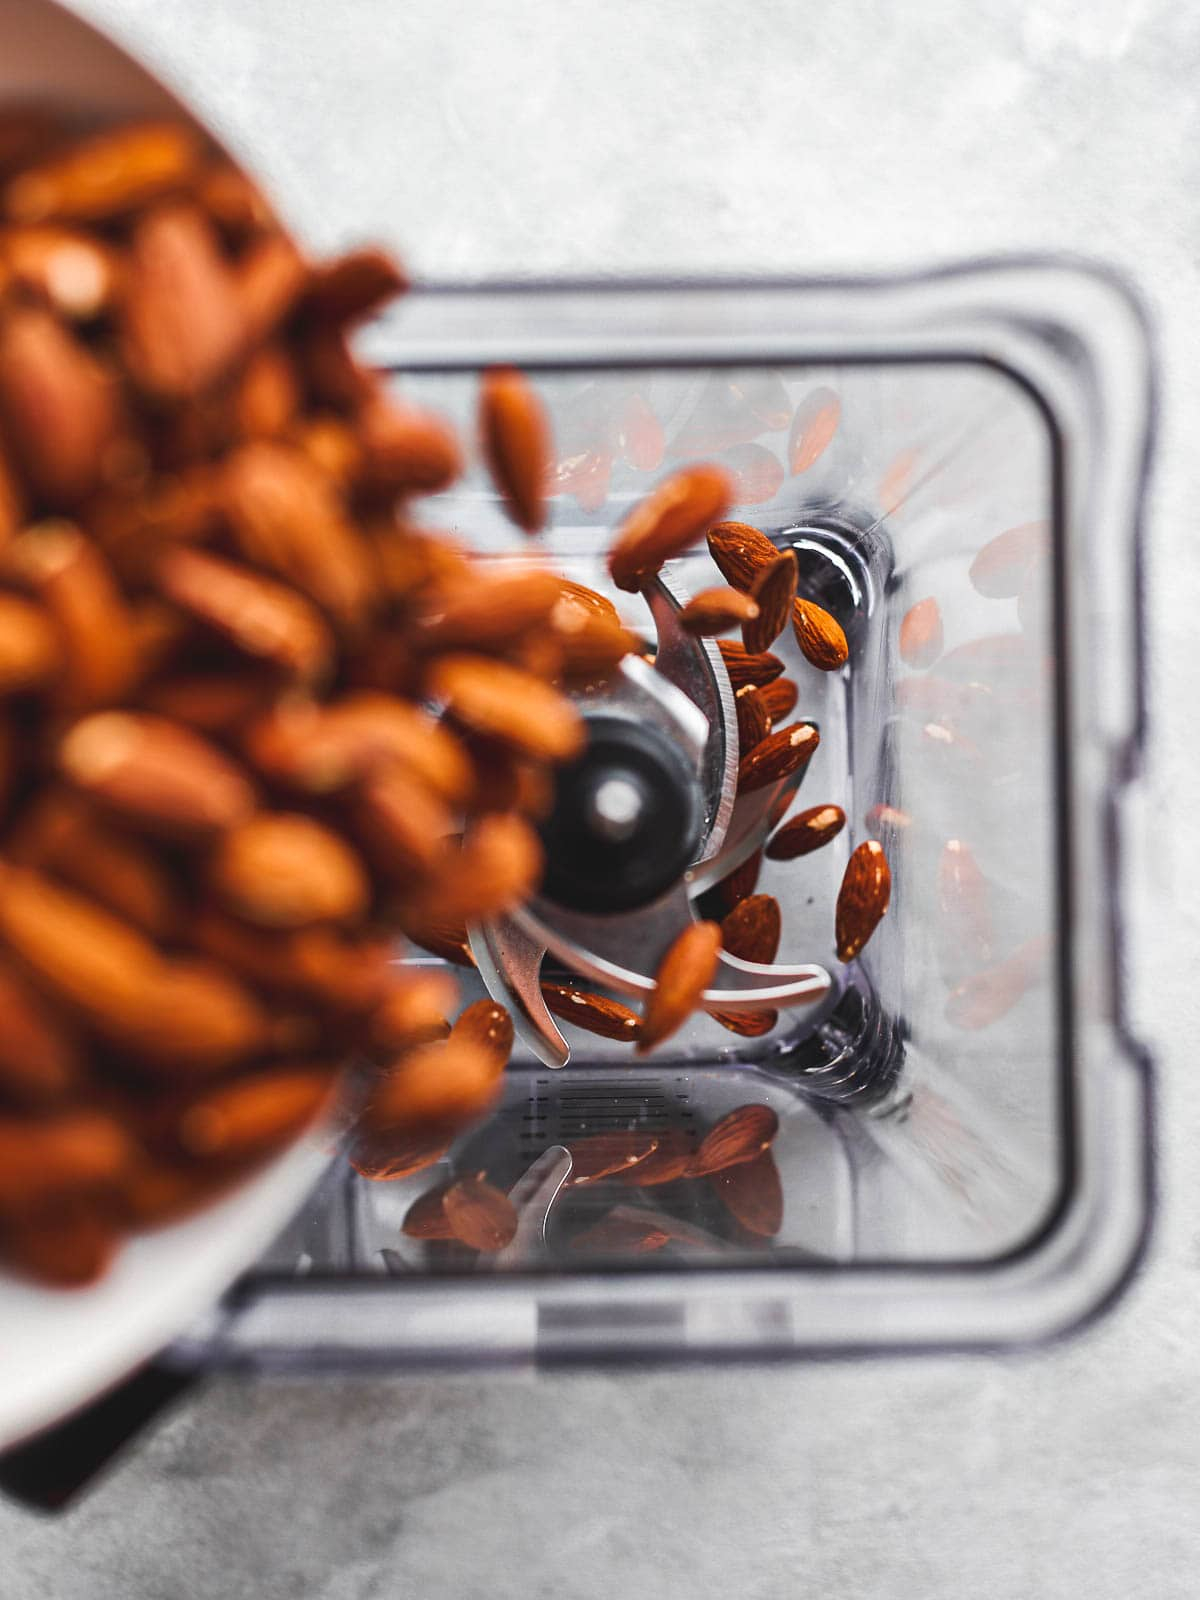 Pouring almonds into blender